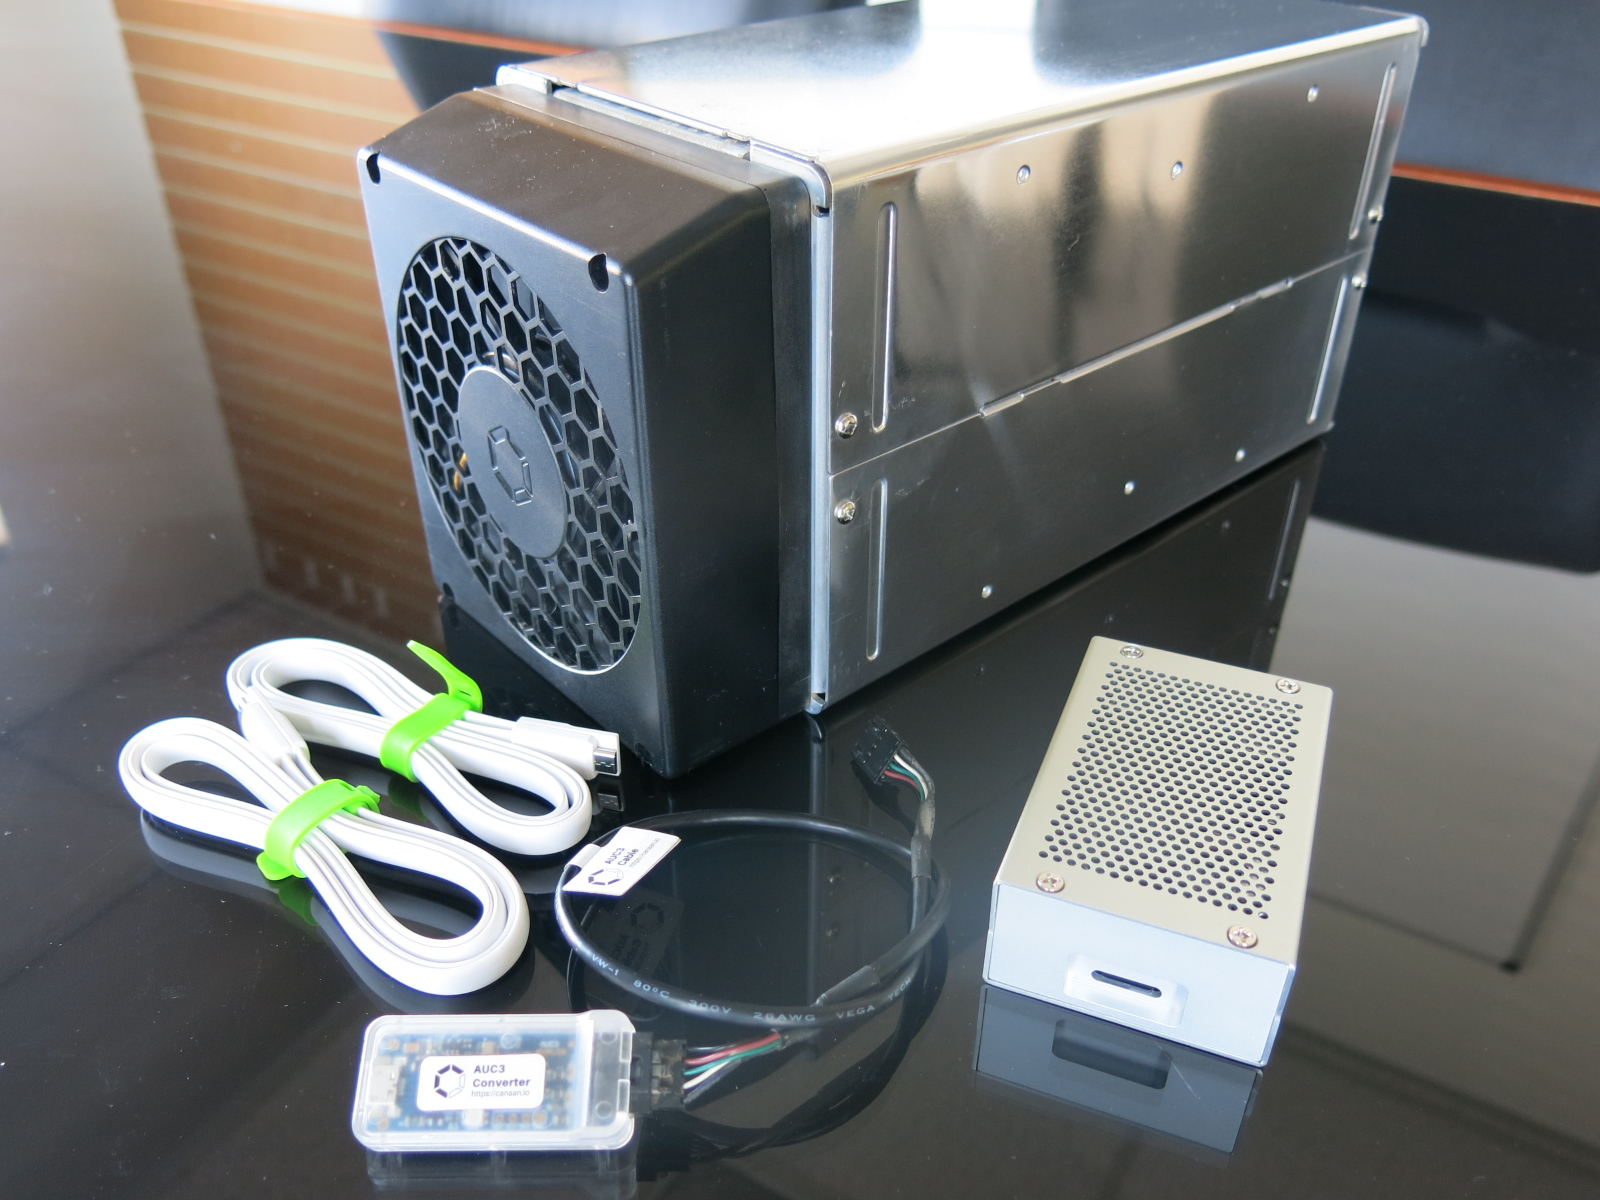 avalon 741 7 3th s asic bitcoin miner 1150w 7300gh s btc bch complete kit avalon 741 7 3th s asic bitcoin miner w platinum 1200w psu controller and auc3